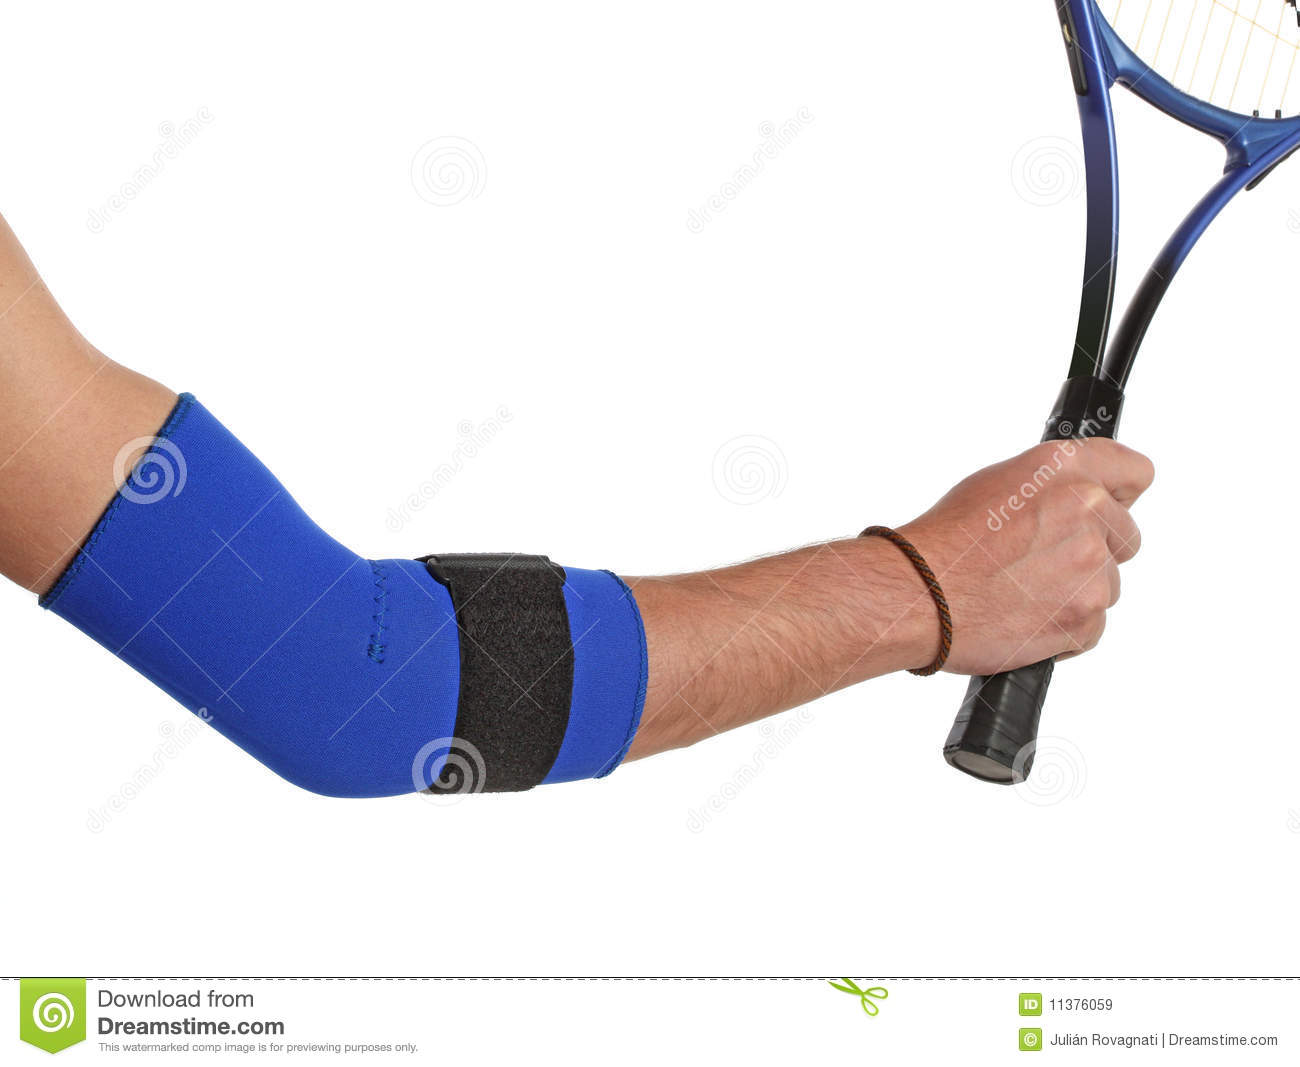 Tennis player wearing an elbow bandage